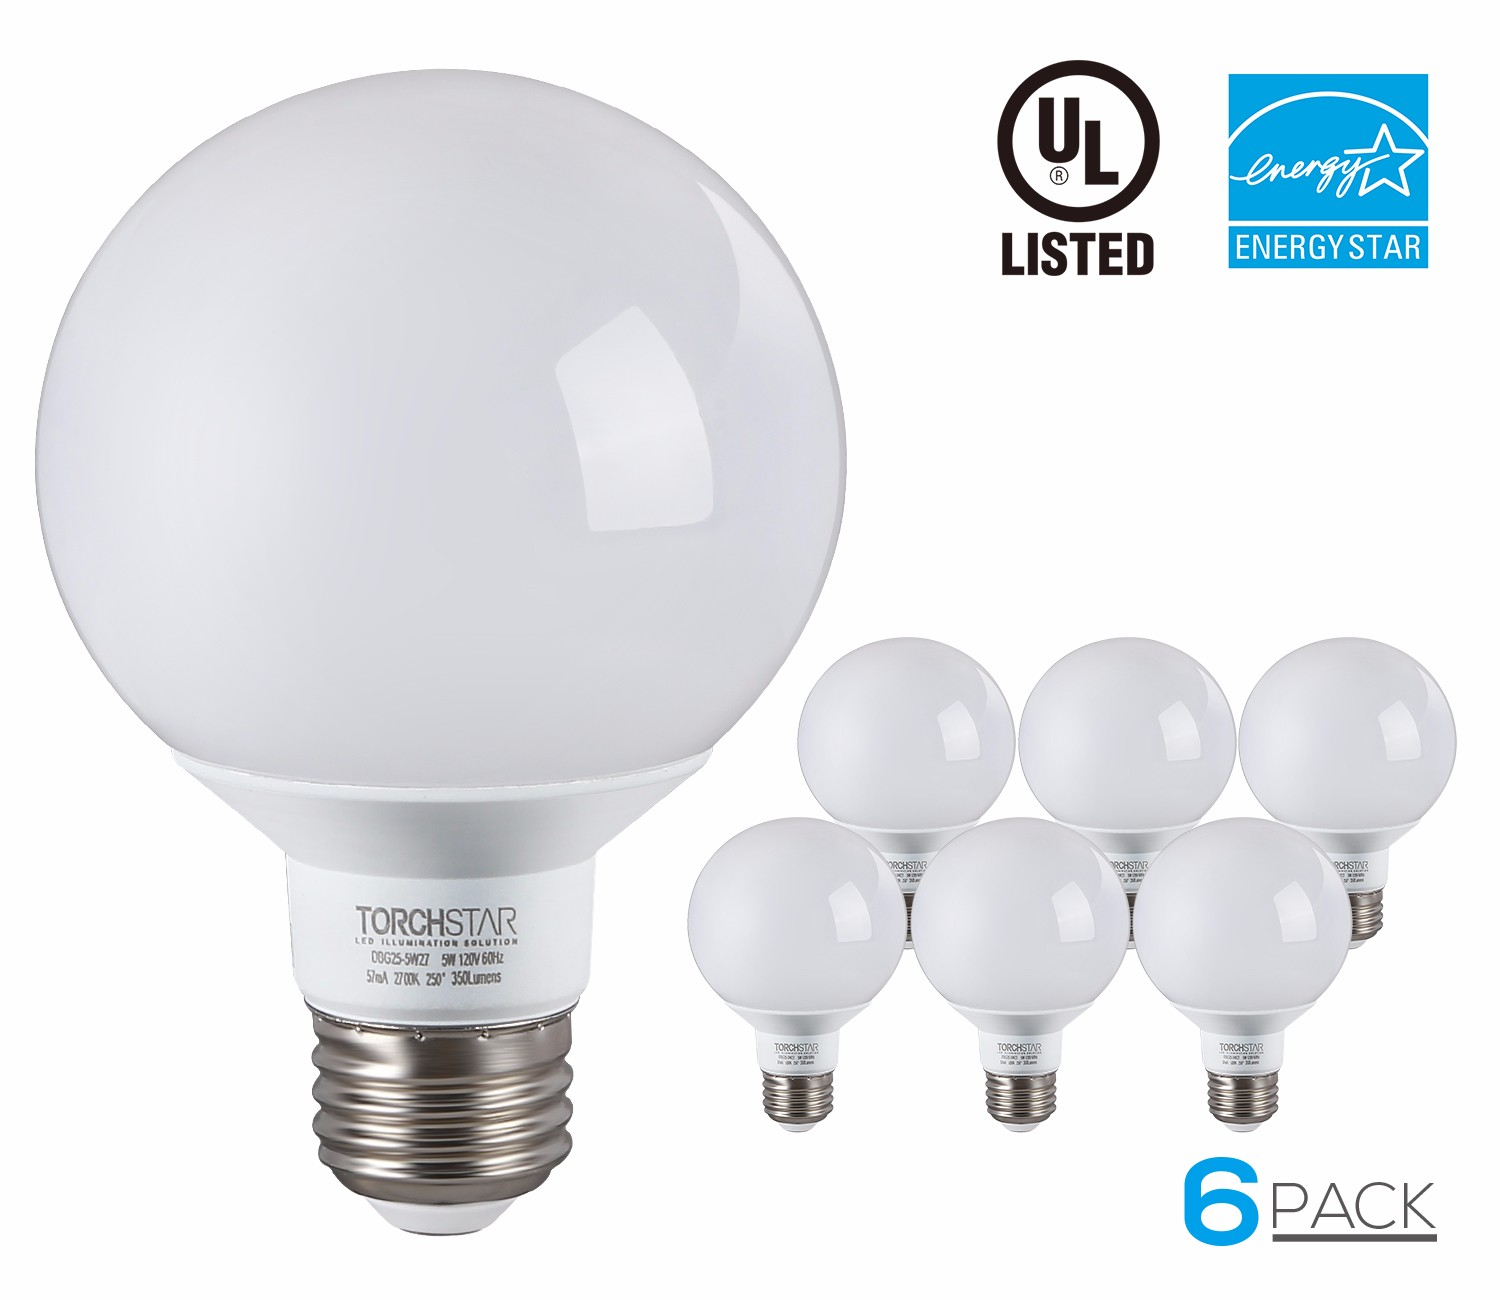 6 Pack G25 Globe LED Light Bulb, 5W (40W Equiv.), ENERGY